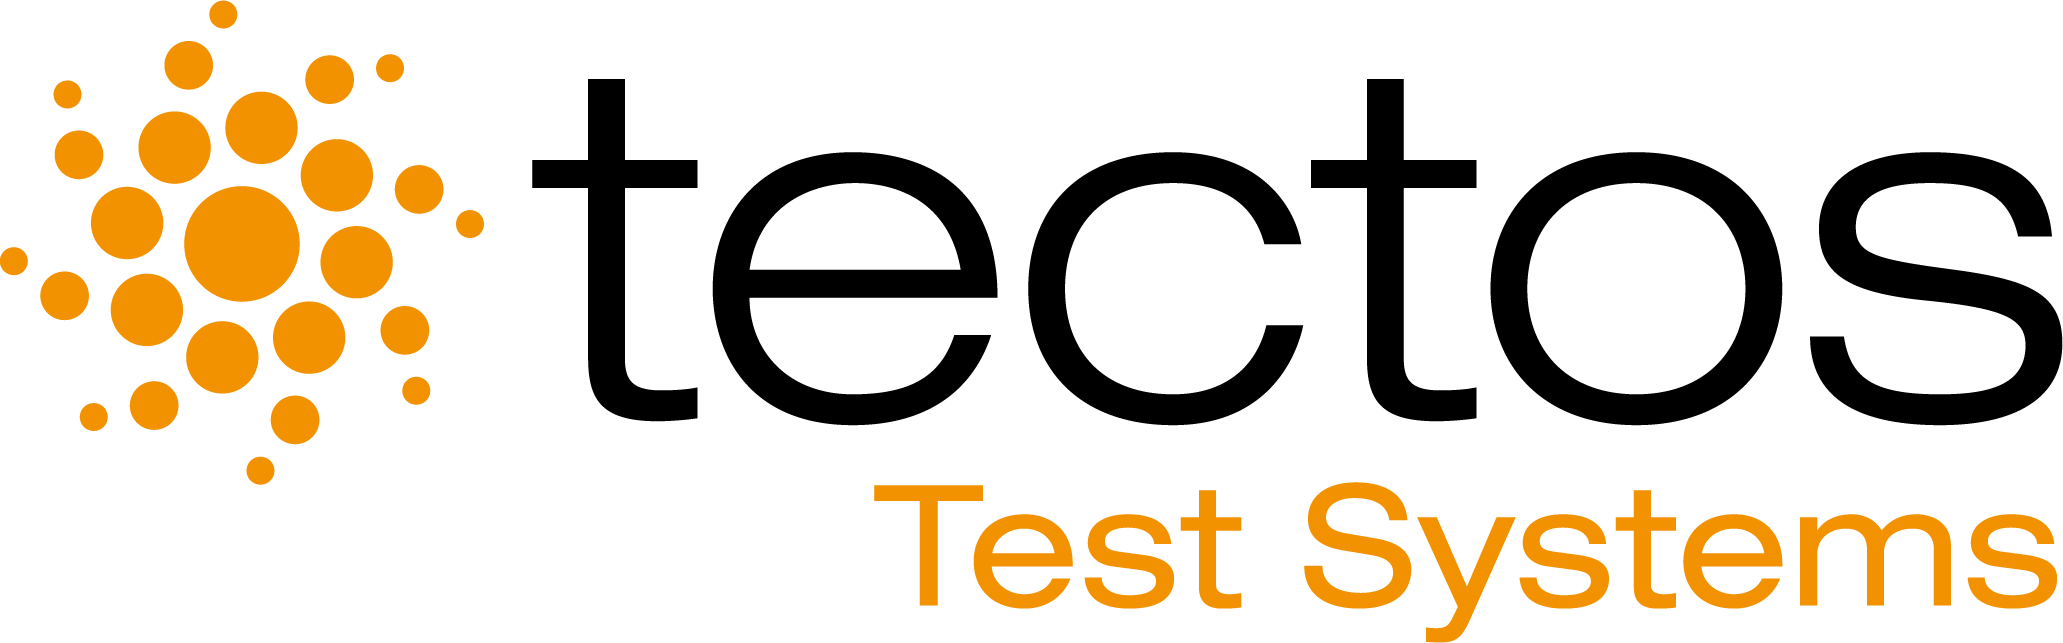 Link to Test-Systems